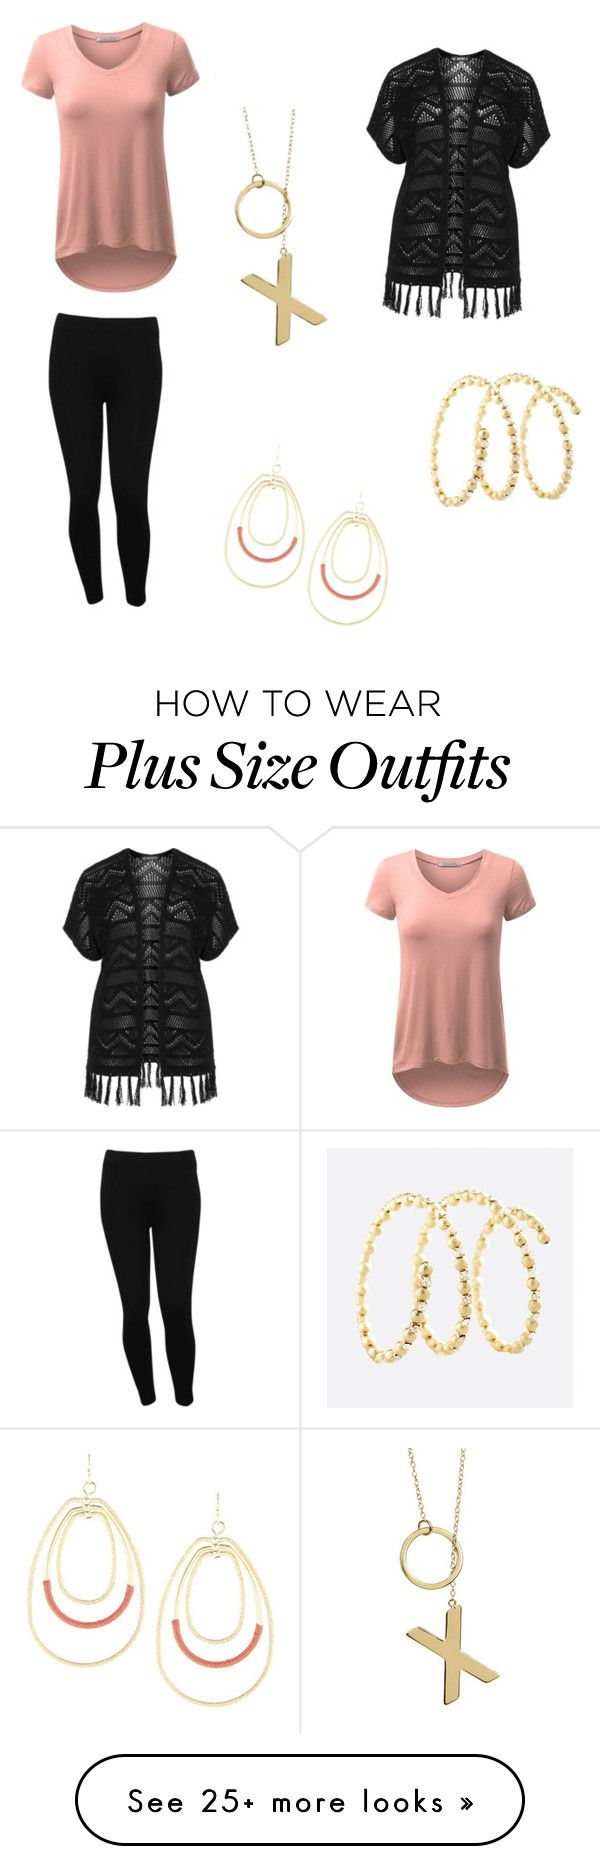 """Untitled #1"" by diciocln on Polyvore featuring M&Co, Verpass, Avenue, Lane Bryant and ADORNIA"